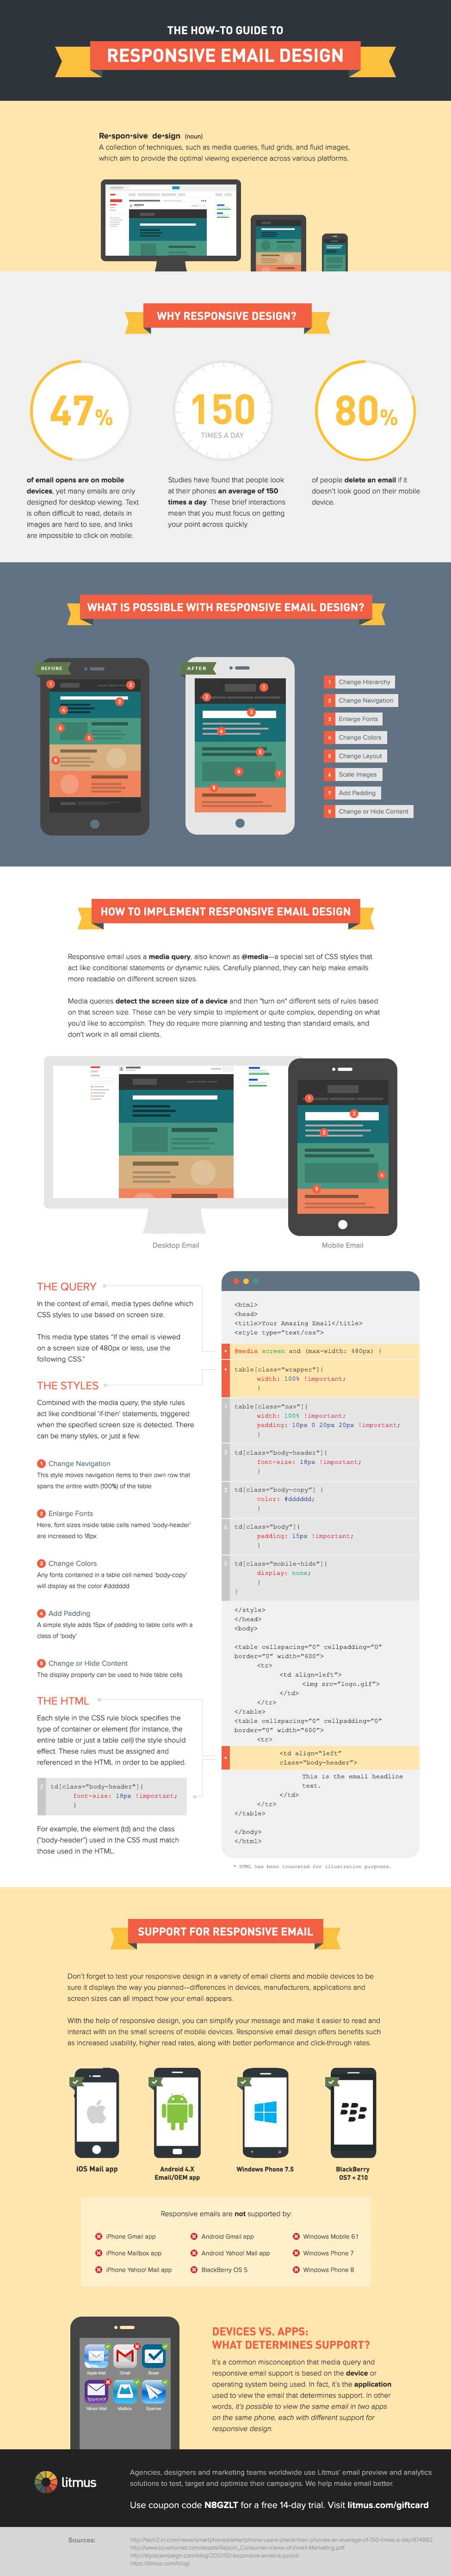 The How To Guide To Responsive Email Design Litmus